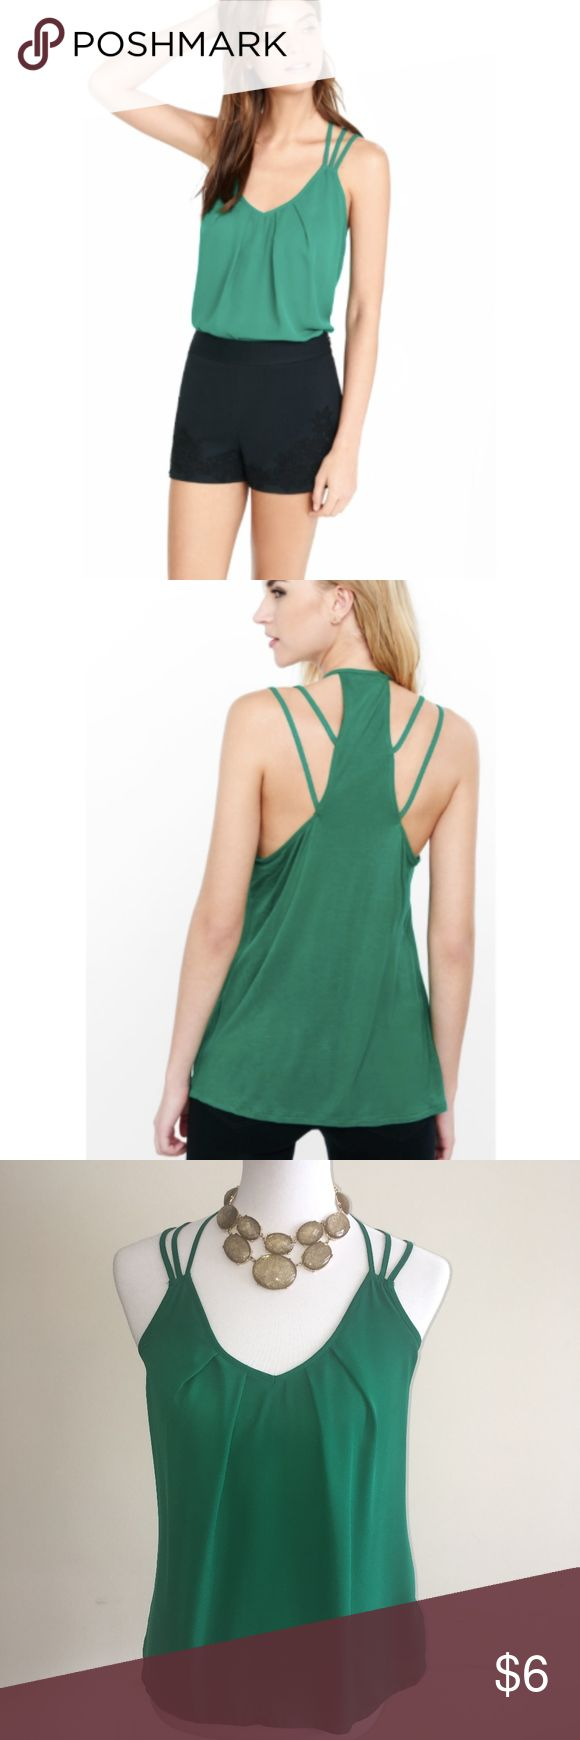 EXPRESS Green Strappy Racerback Cami In good used condition. Only worn a copy of times.  - Front body and straps: 100% polyester - Back body: 100% rayon - Hand wash cold separately Express Tops Camisoles